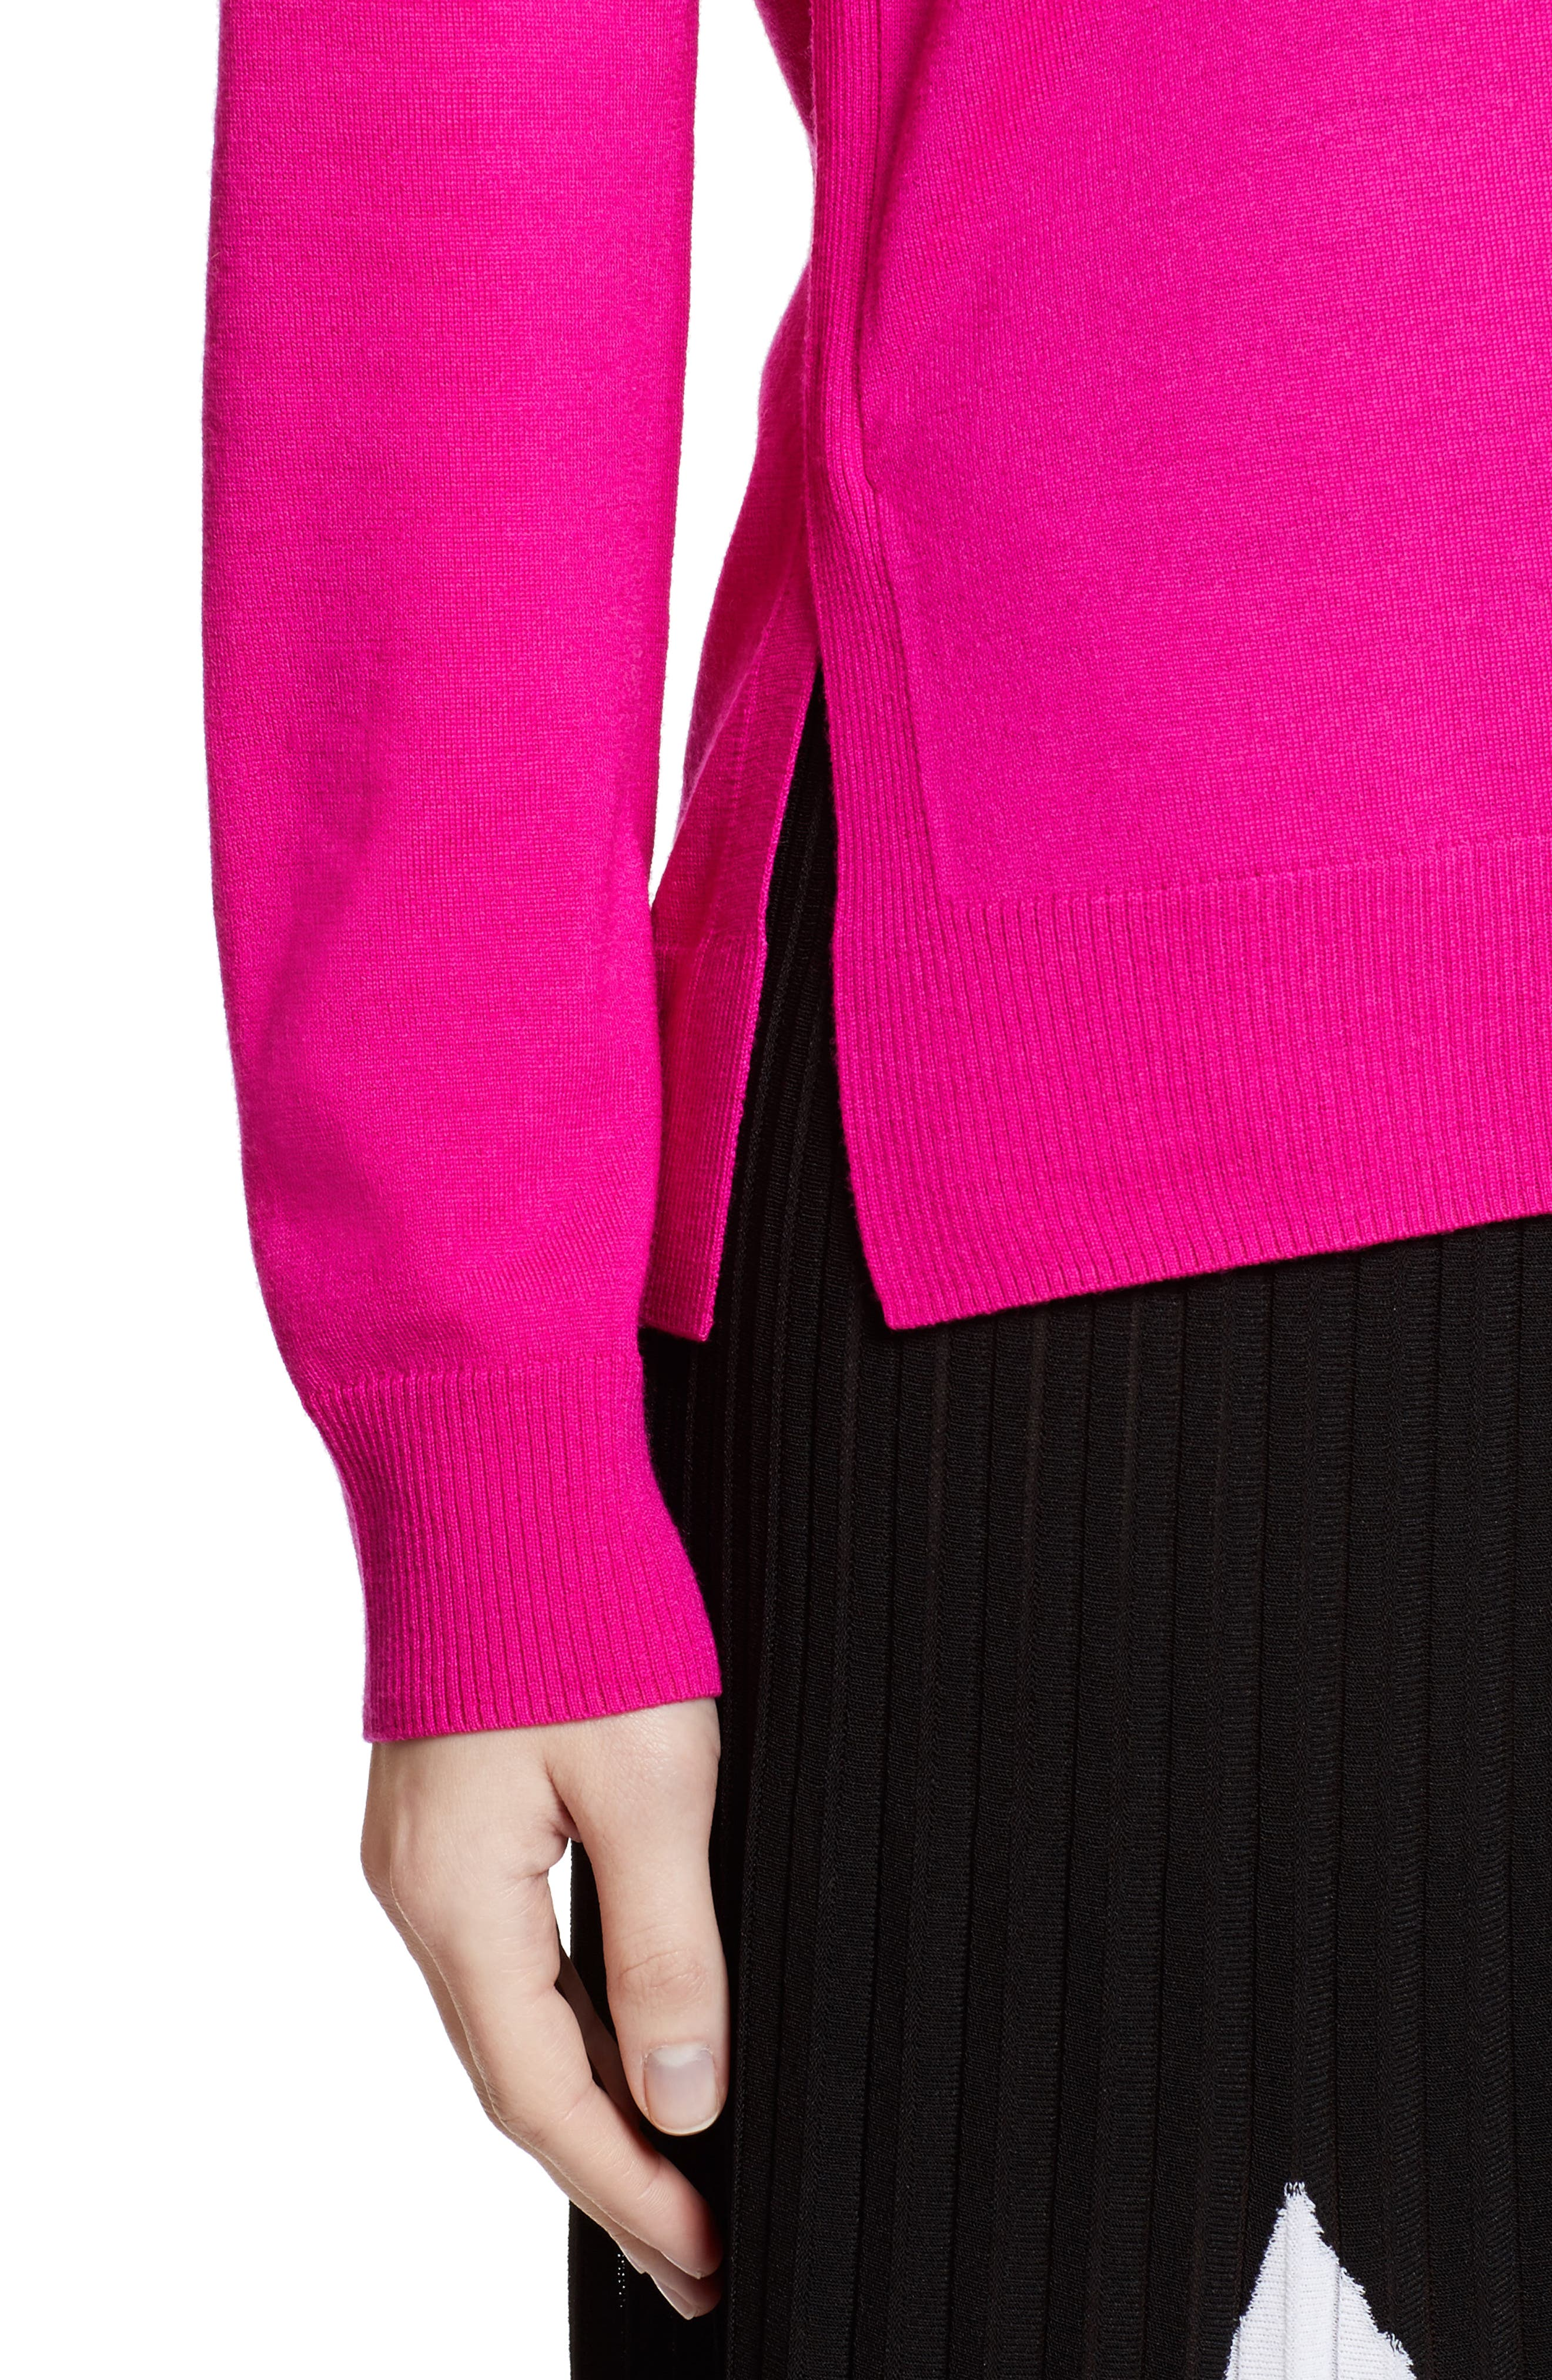 Plunging V-Neck Merino Wool Sweater,                             Alternate thumbnail 6, color,                             Electric Pink